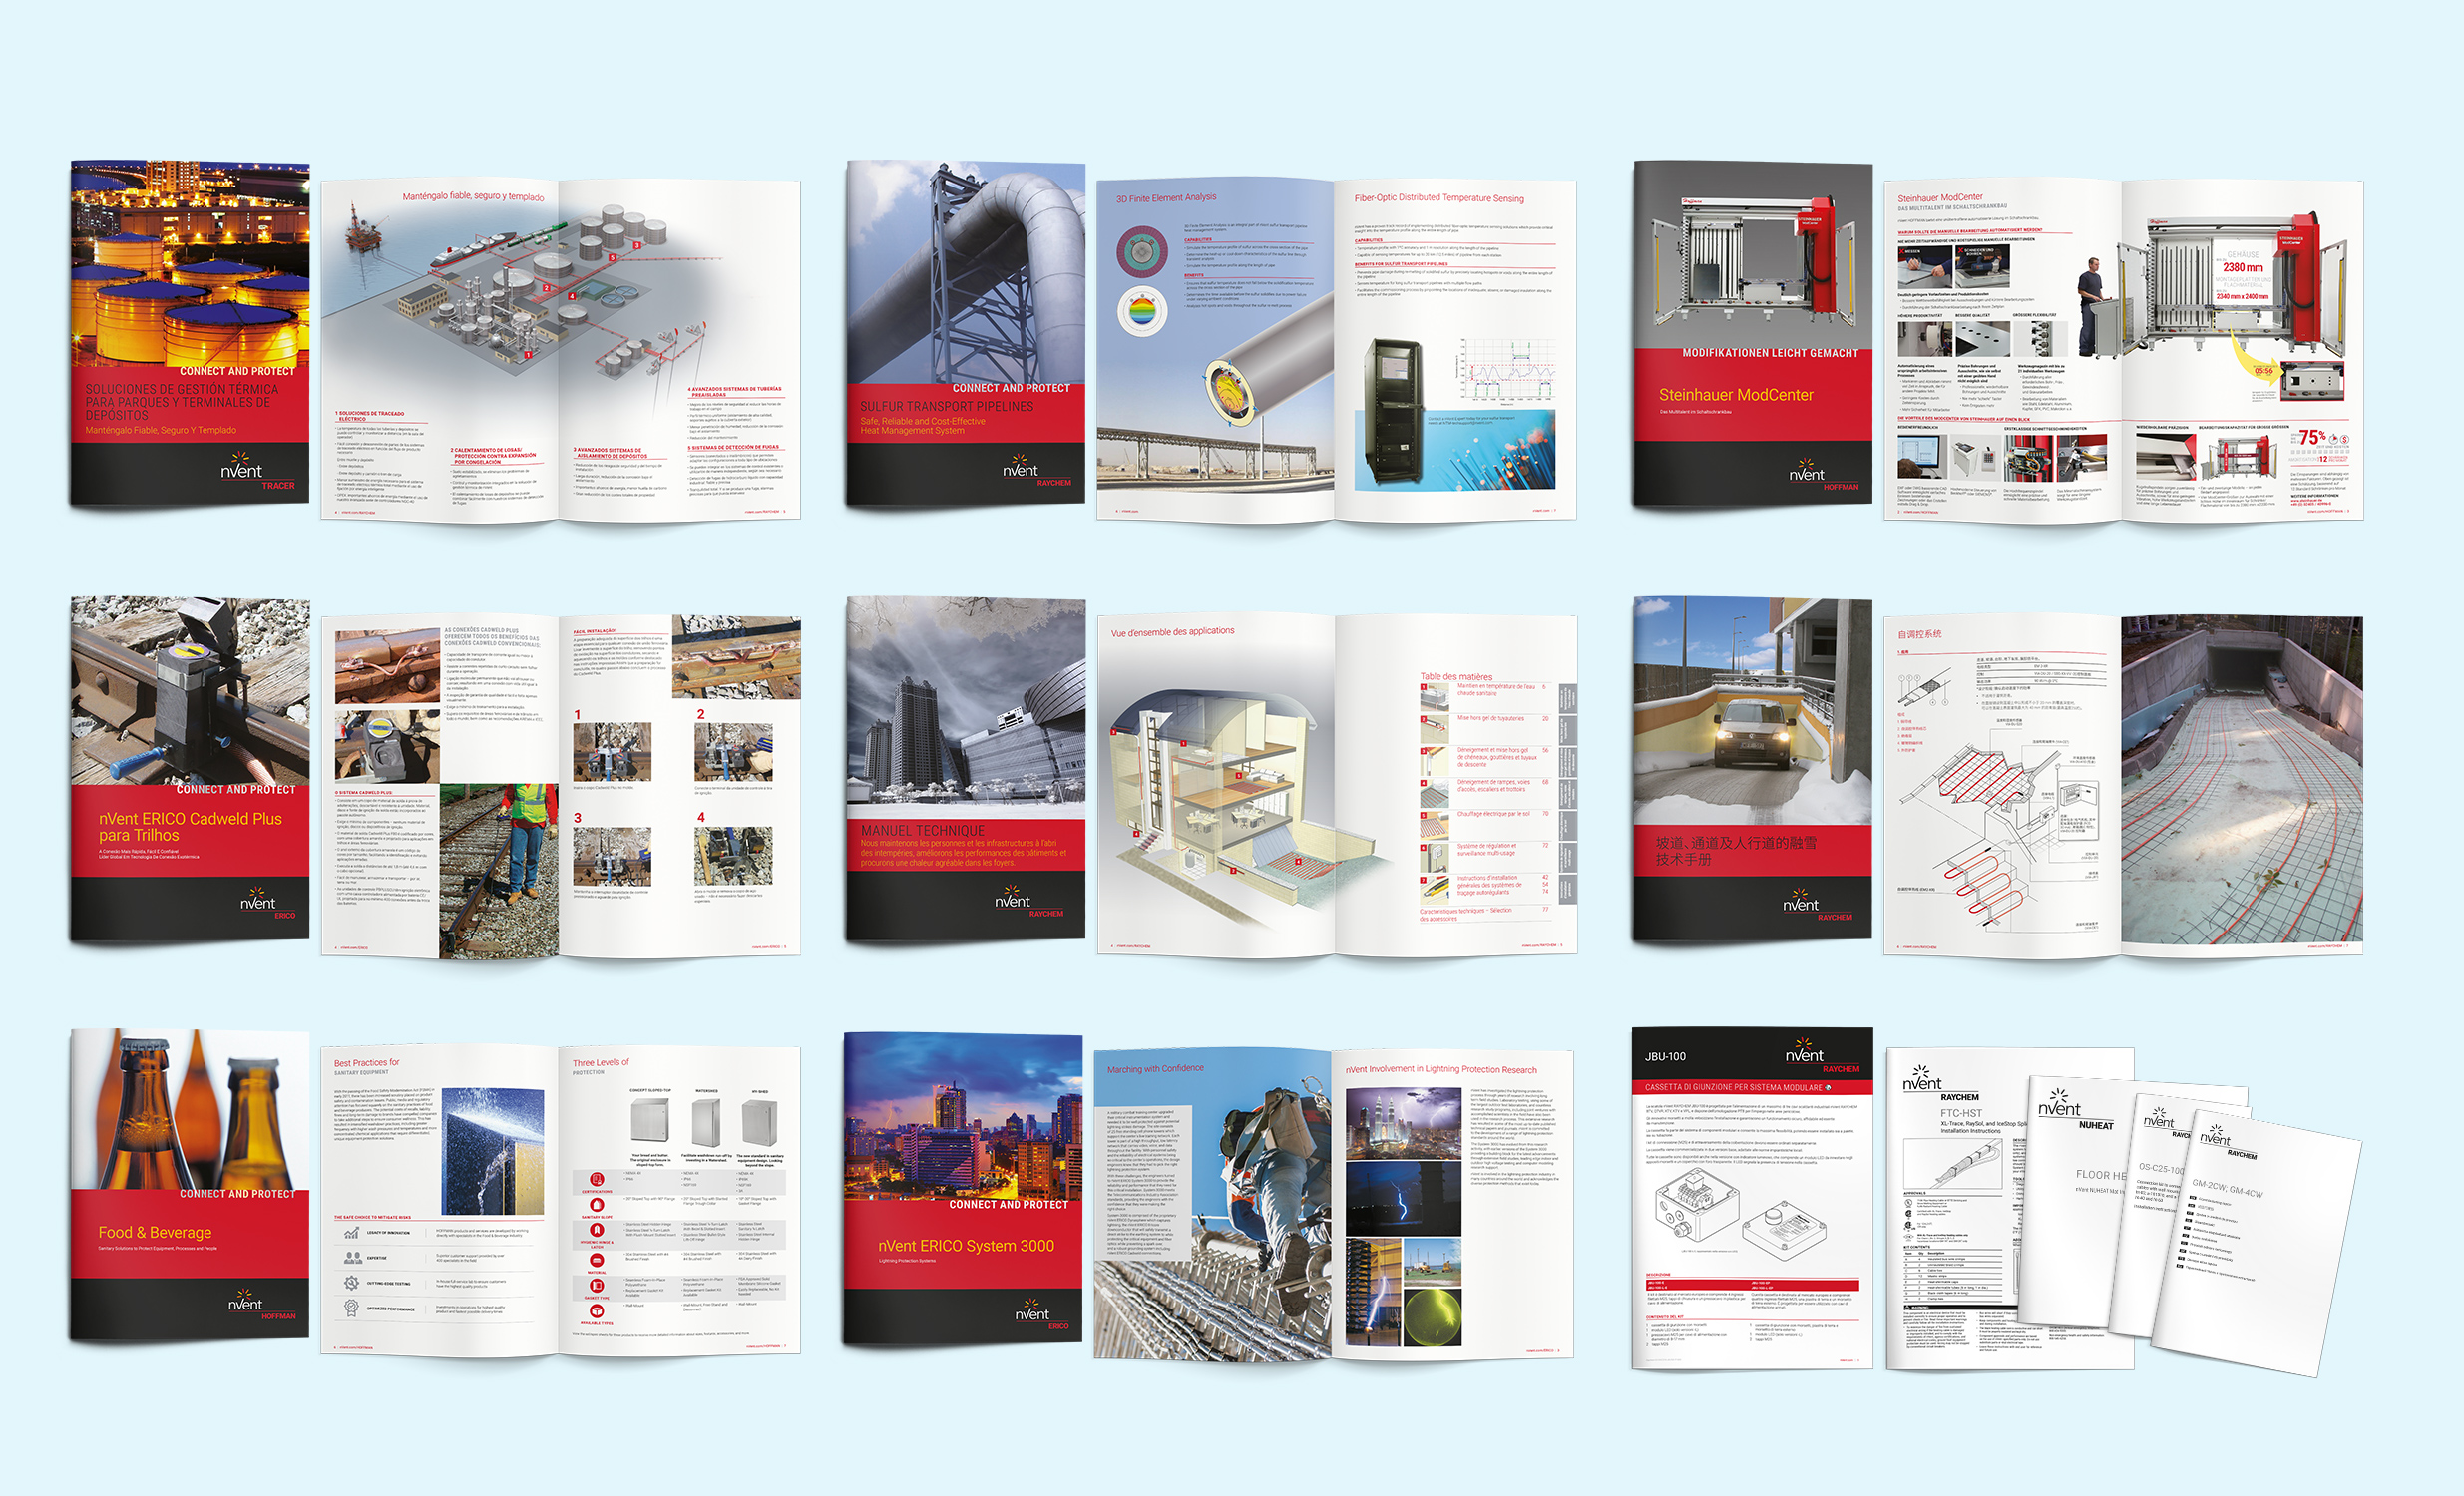 Accurate and comprehensive product brochures are key to the sales strategy for a business such as Pentair